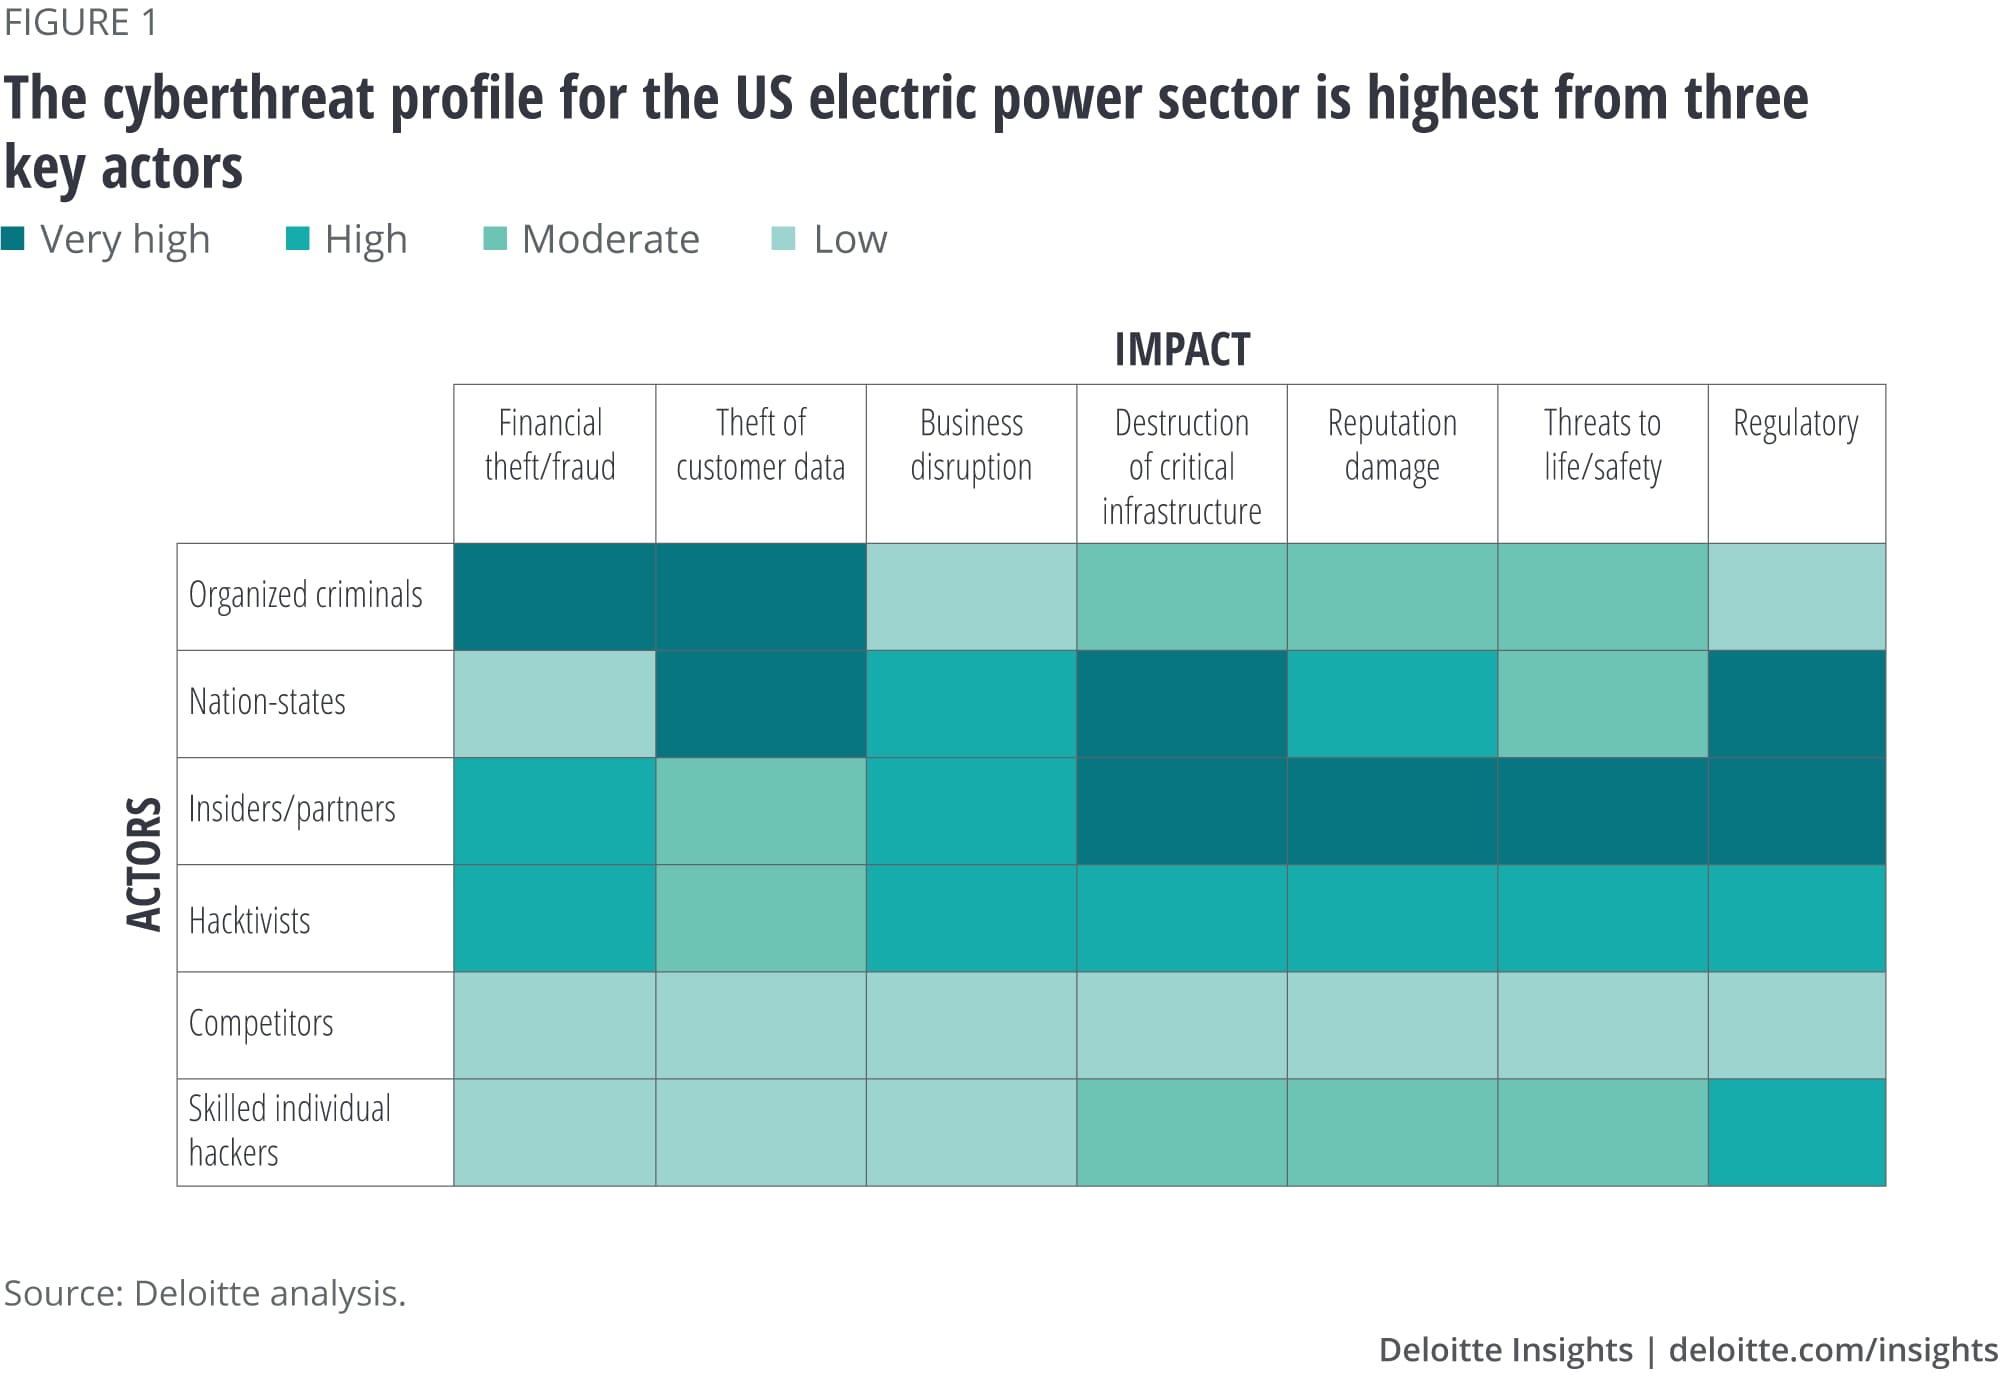 Managing cyber risk in the electric power sector | Deloitte